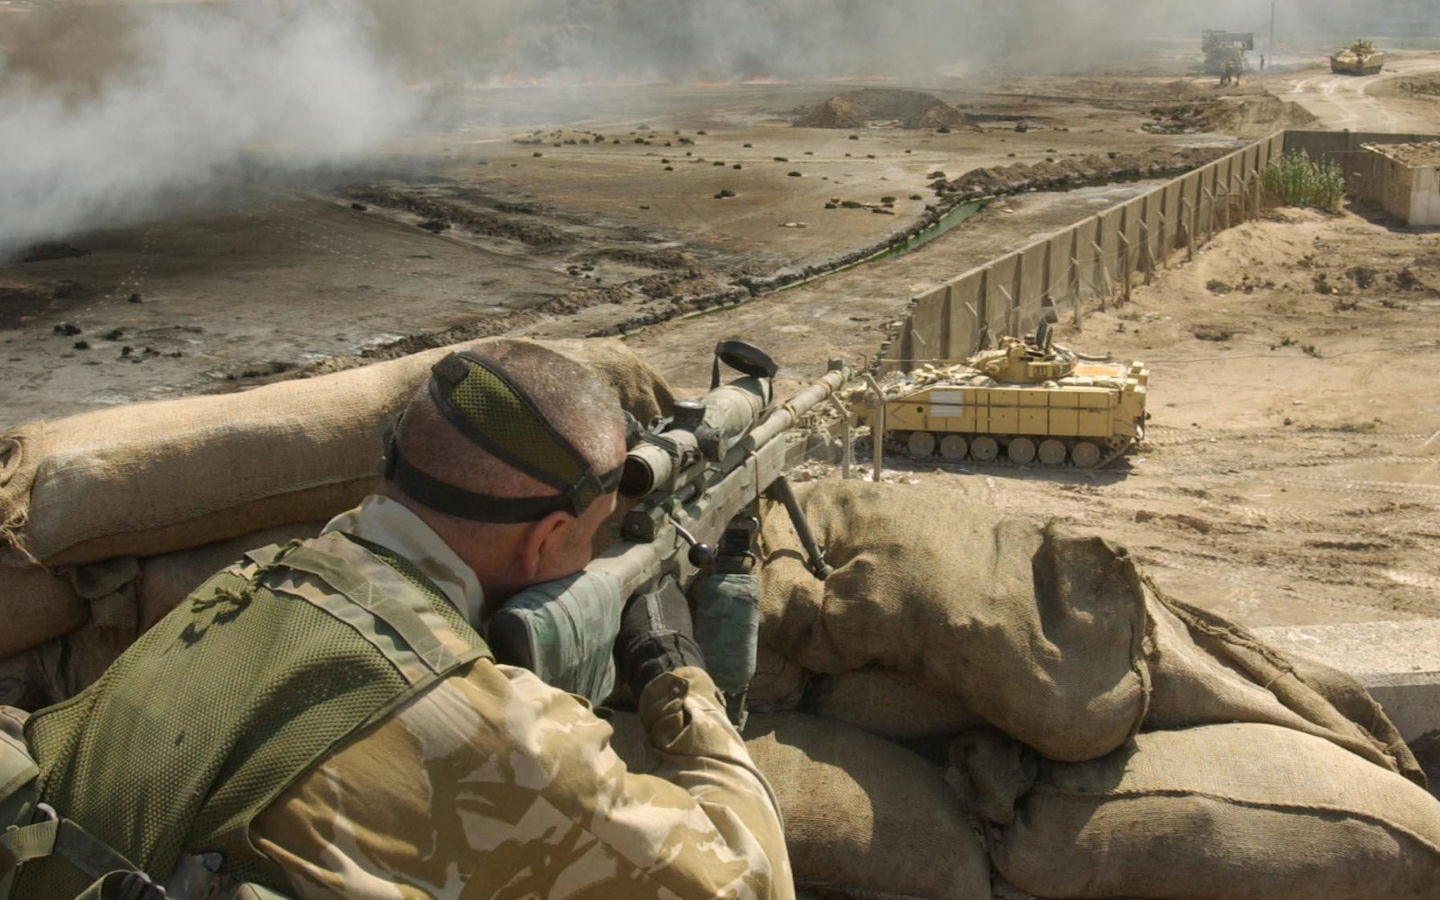 Us Army Sniper 8526 Hd Wallpapers in War n Army   Imagescicom 1440x900